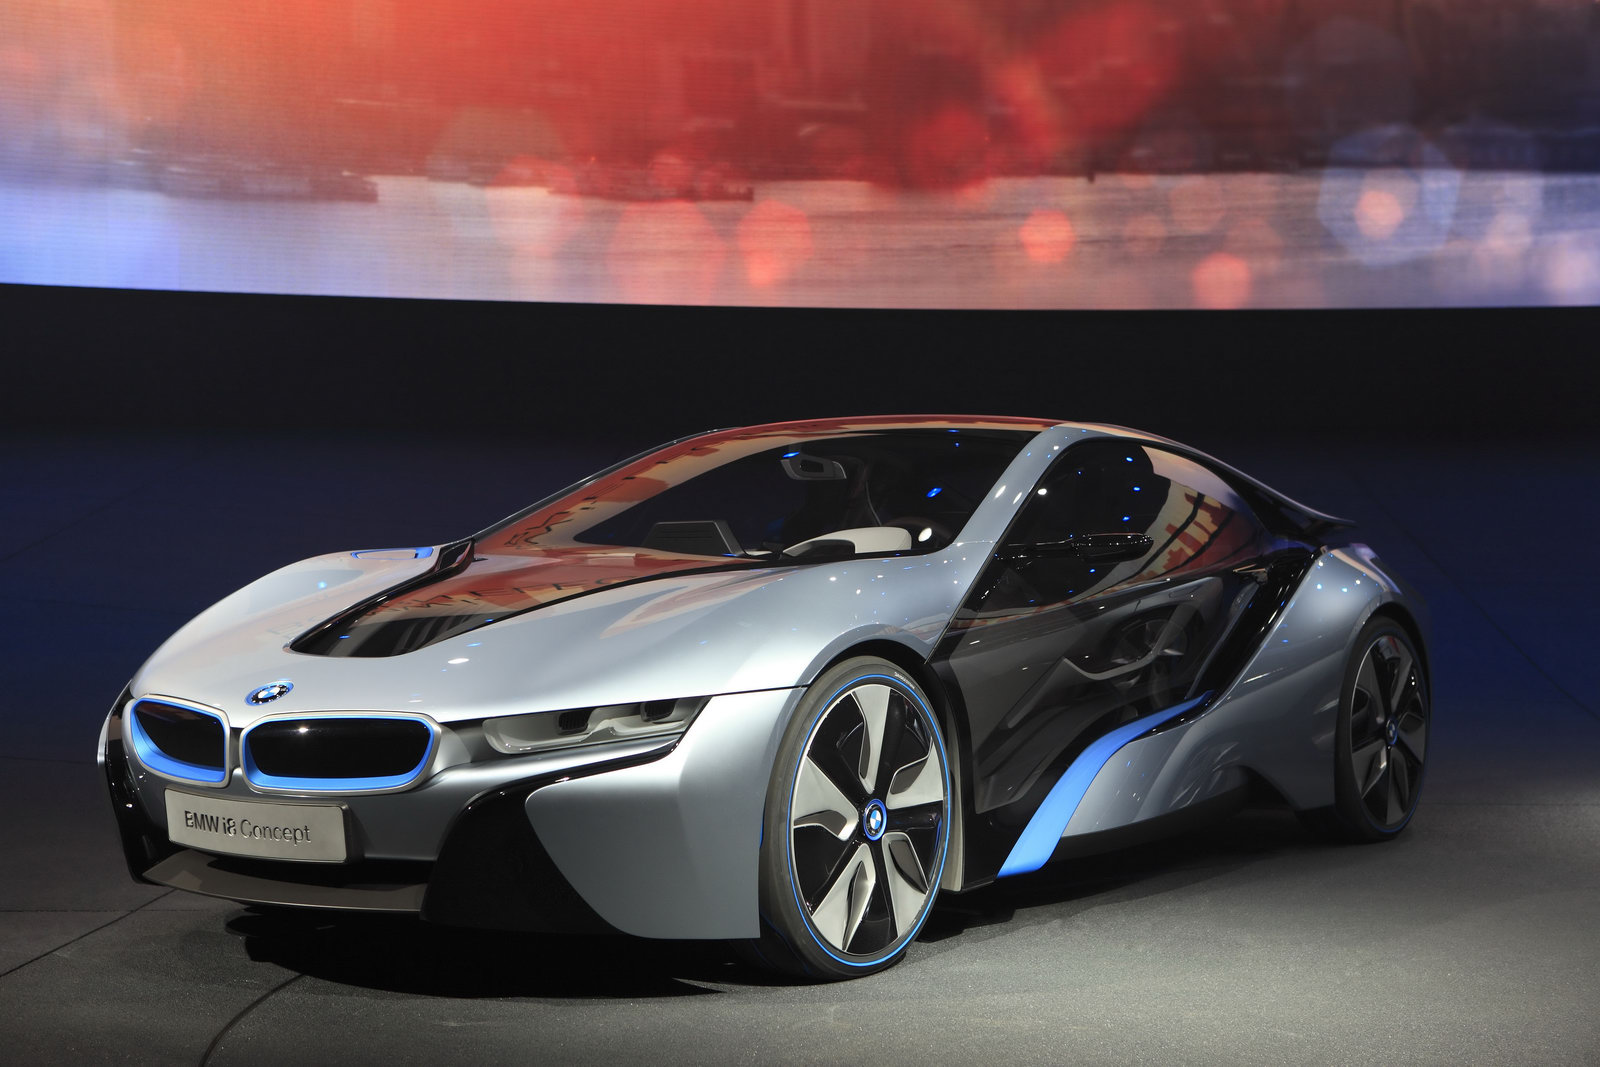 2013 BMW I8 CONCEPT CAR 10 BMW ANNOUNCES IT UPCOMING I8 CONCEPT CAR TO BE UNVEILED IN 2013